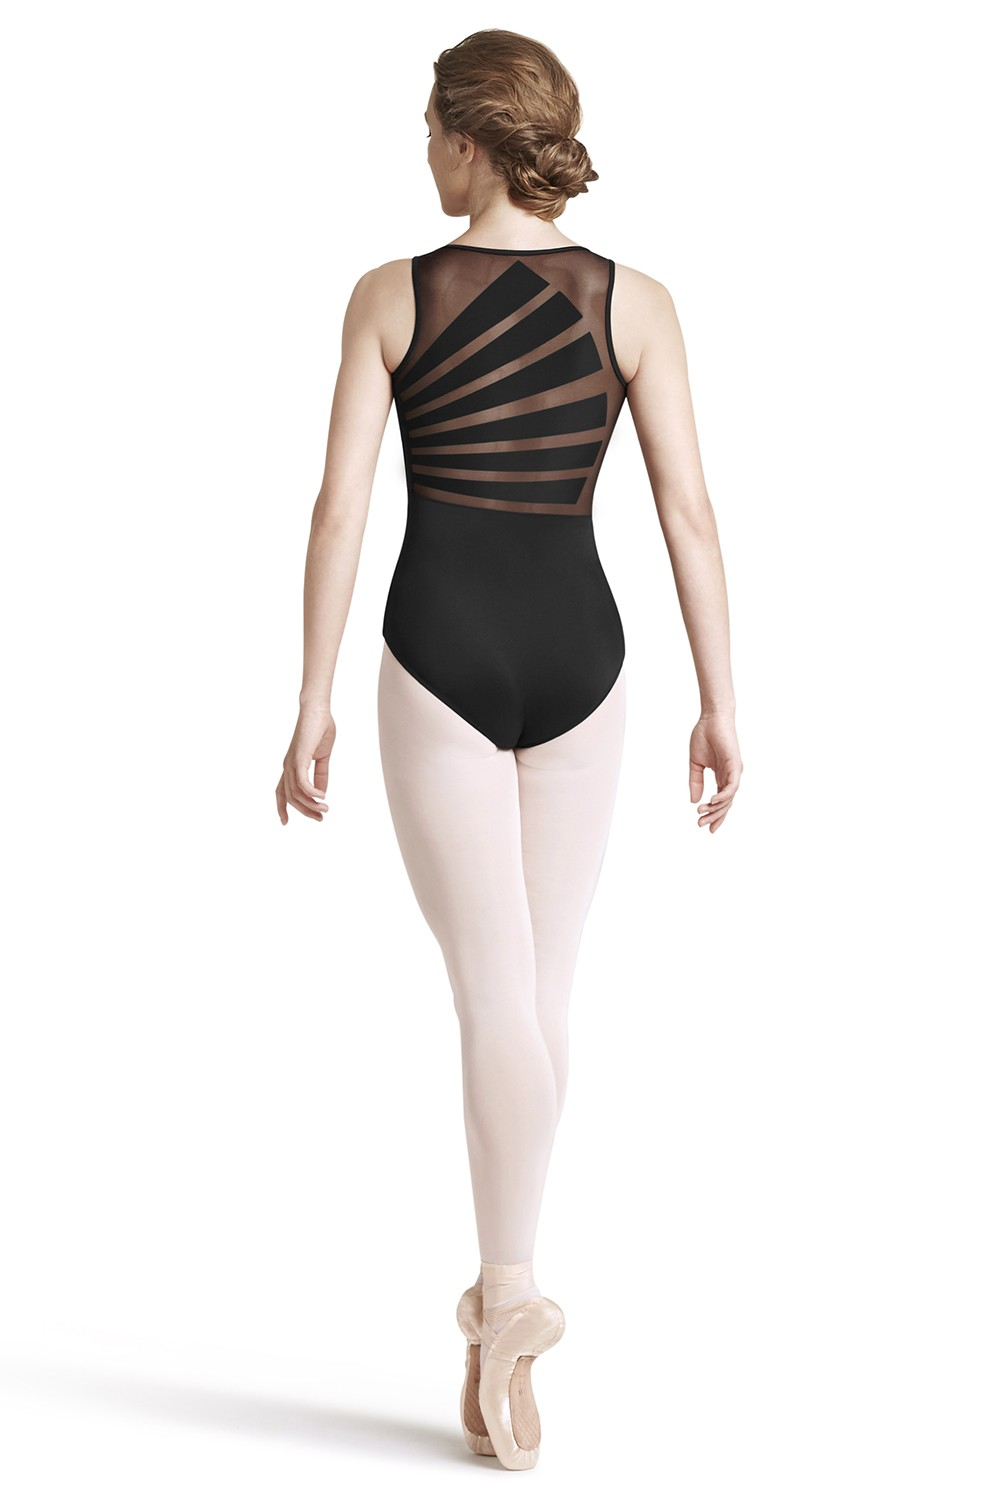 Avani Women's Dance Leotards